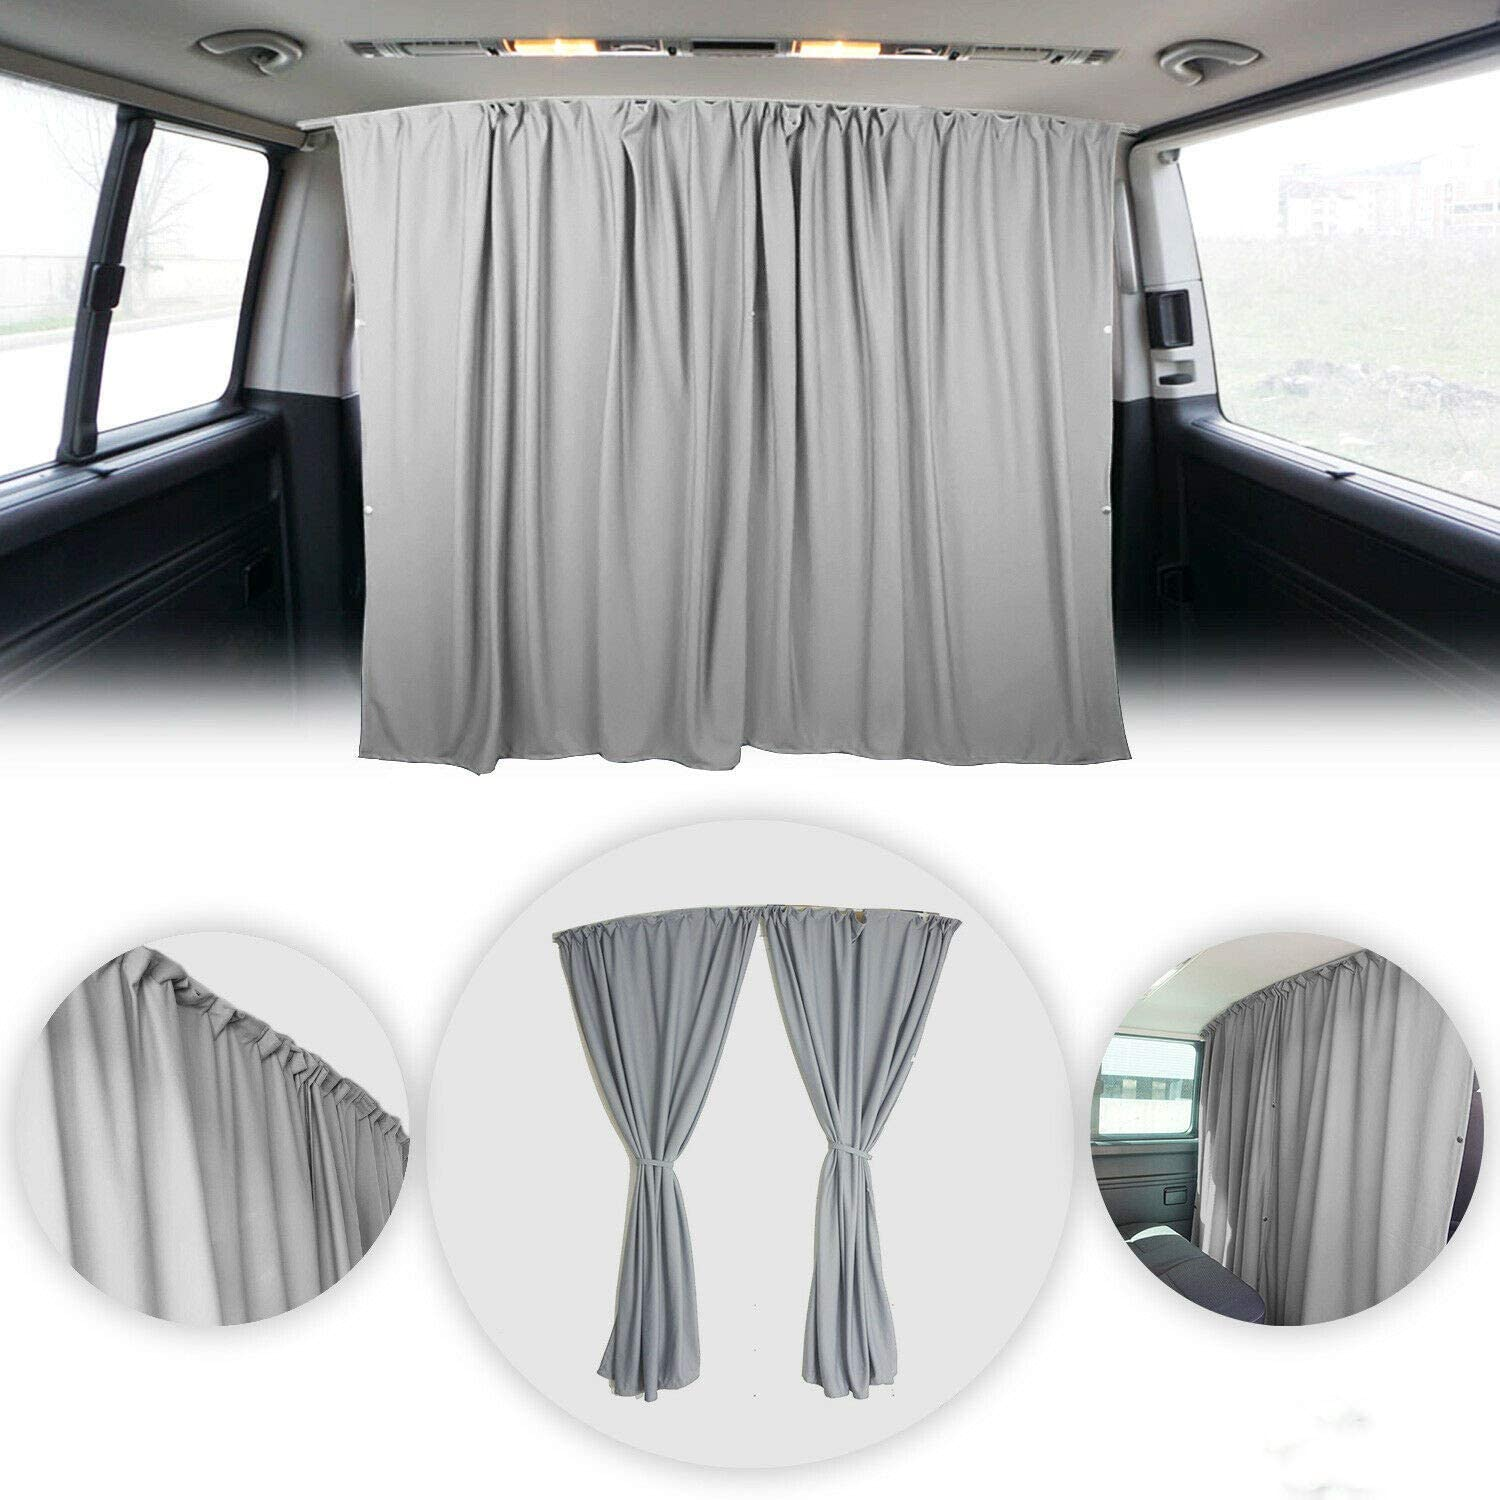 OMAC Van Cab Divider Curtains Now free shipping Sunshade Blac Campervan Blinds Kit Beauty products